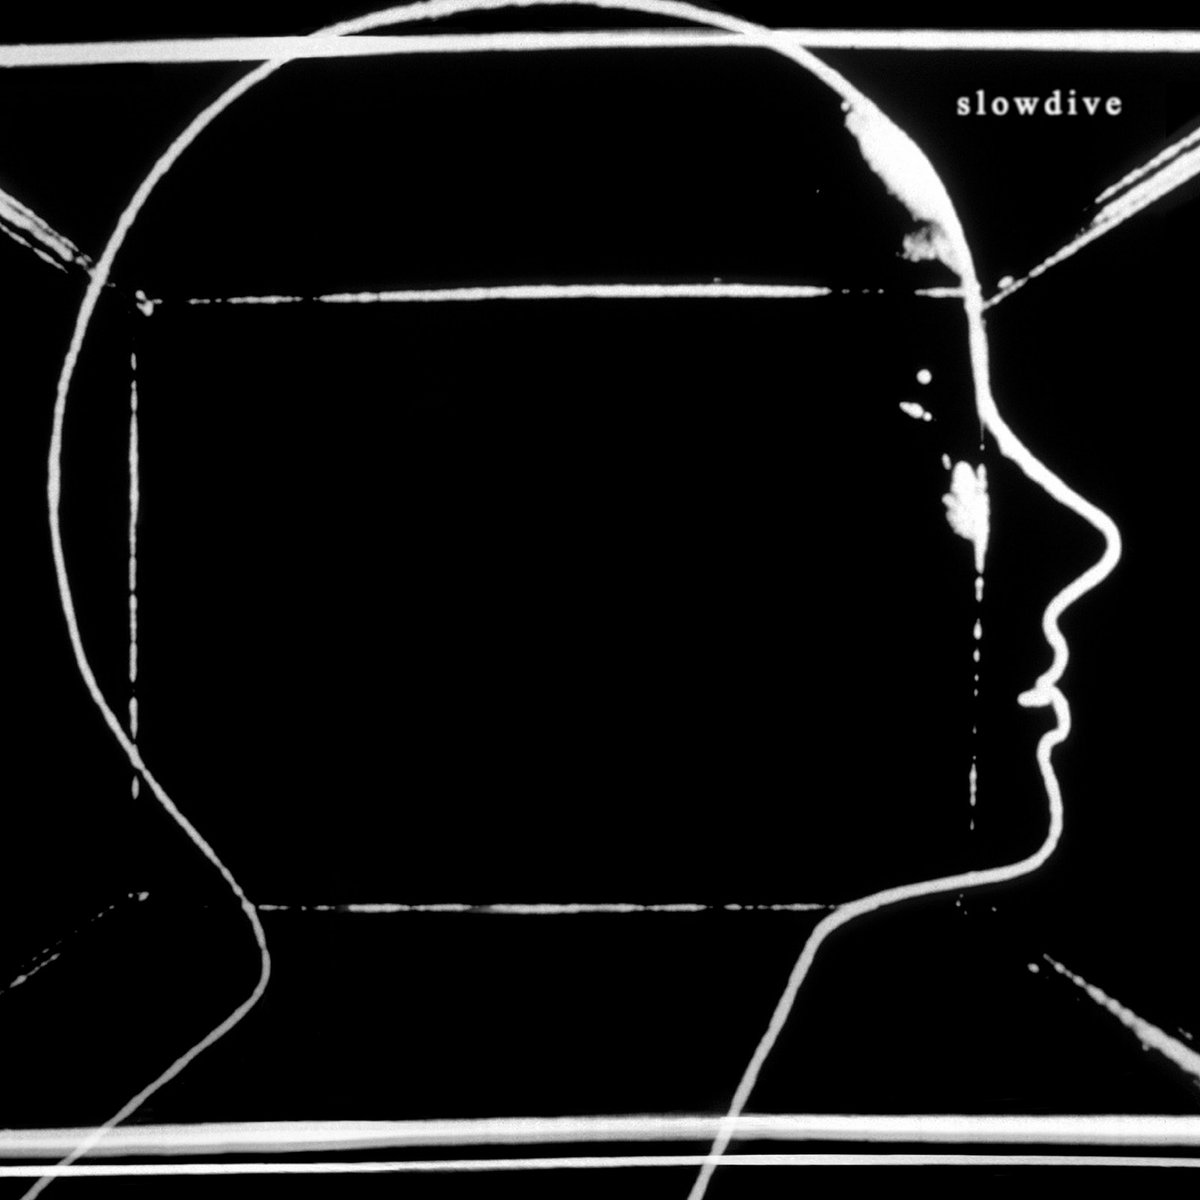 Image result for slowdive slowdive